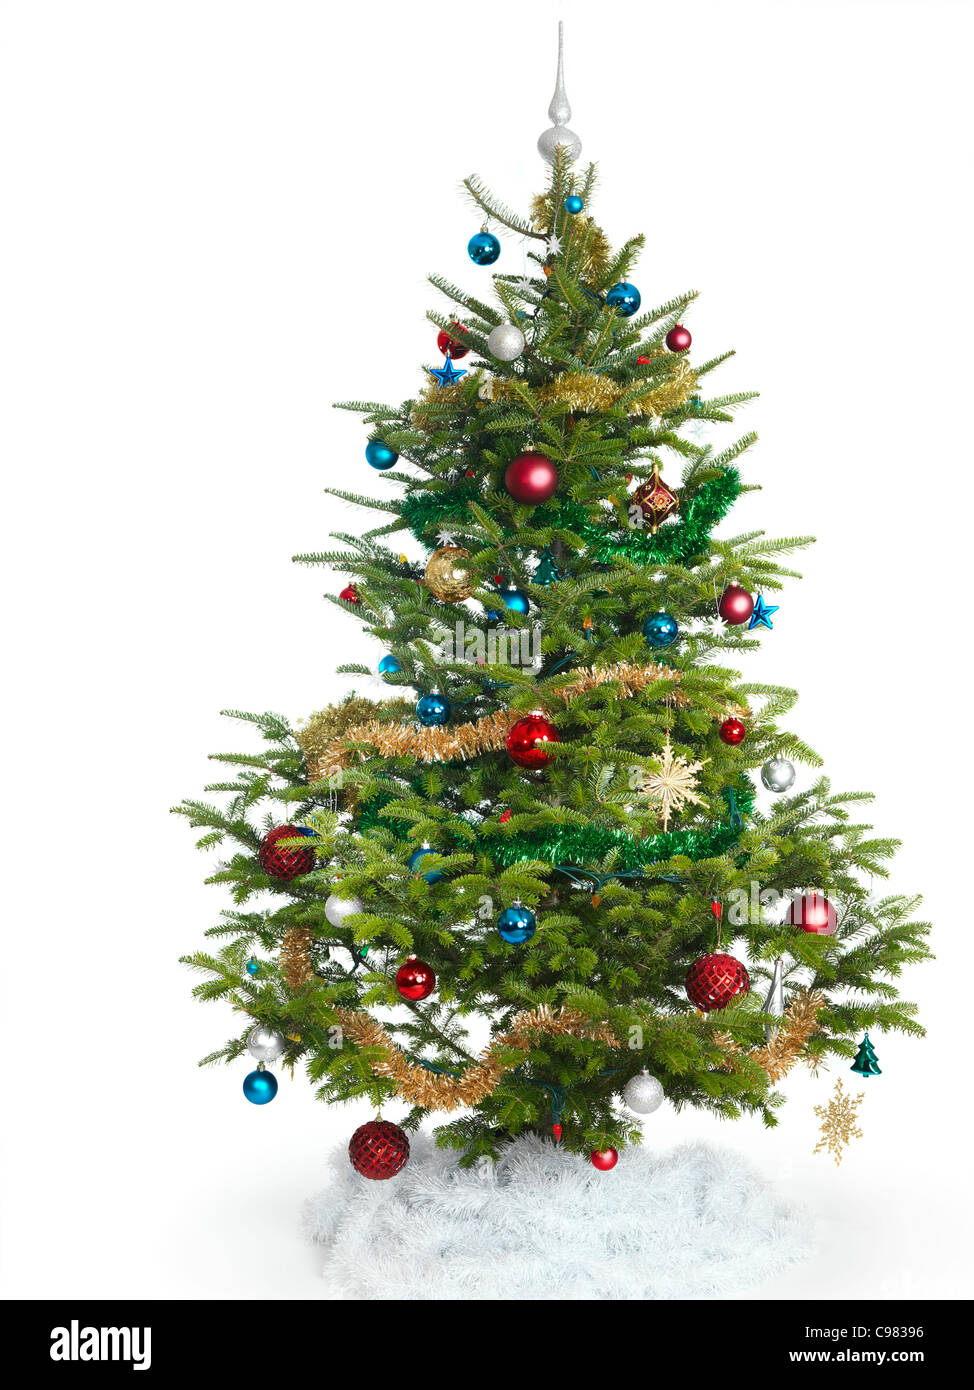 Decorated real Christmas tree isolated on white background - Stock Image